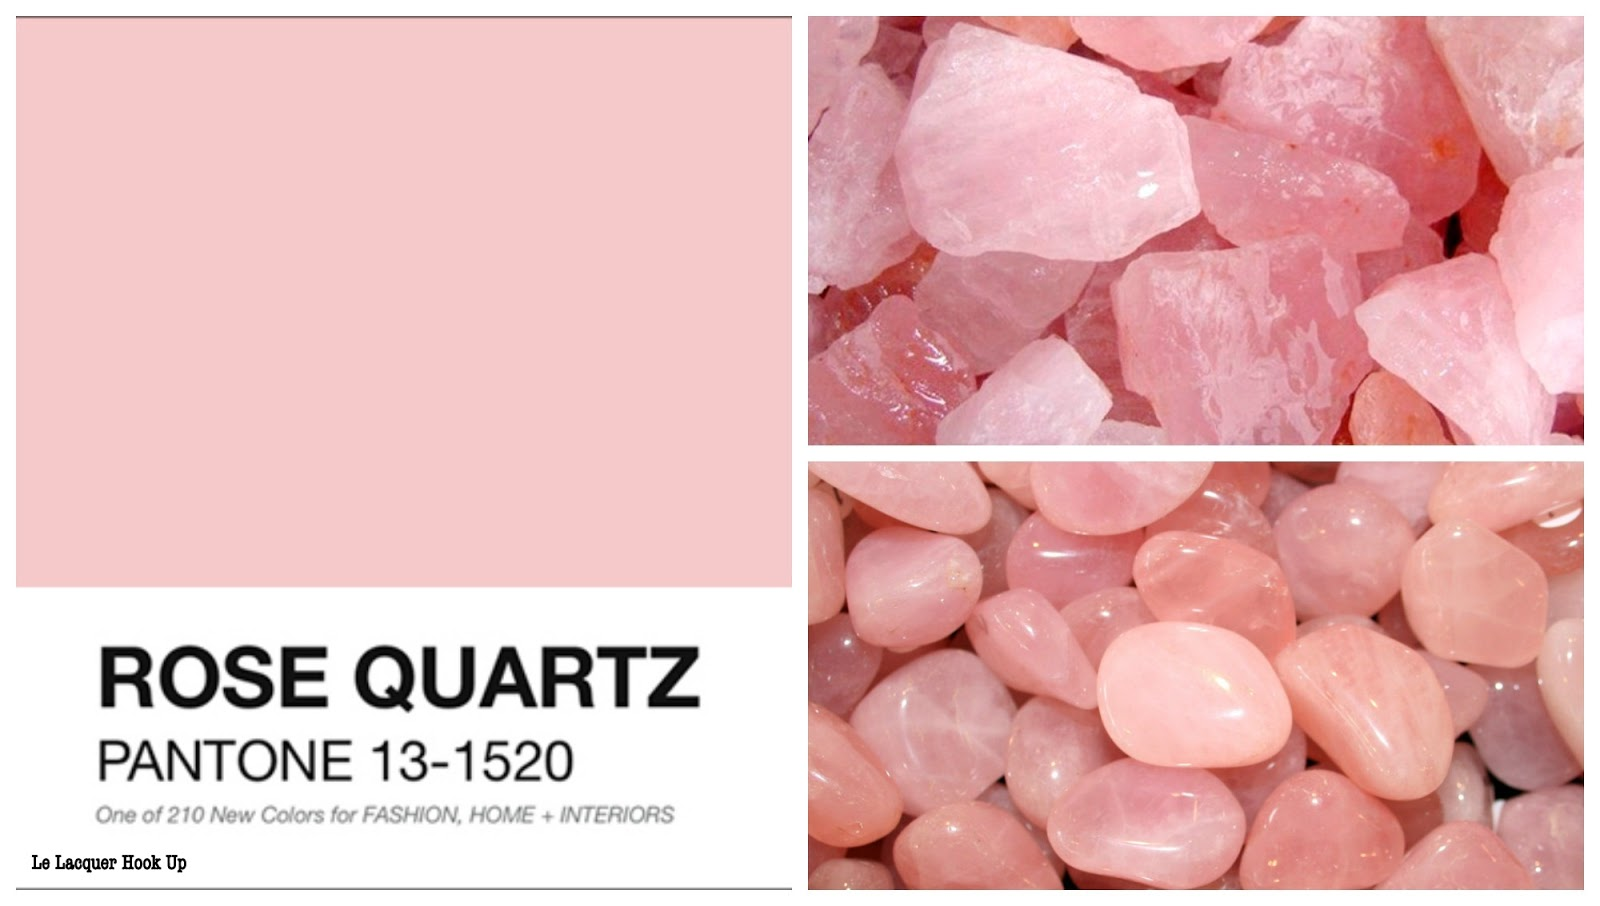 Préférence LE LACQUER HOOK UP: Pantone Colors of the Year 2016: Rose Quartz  WT24